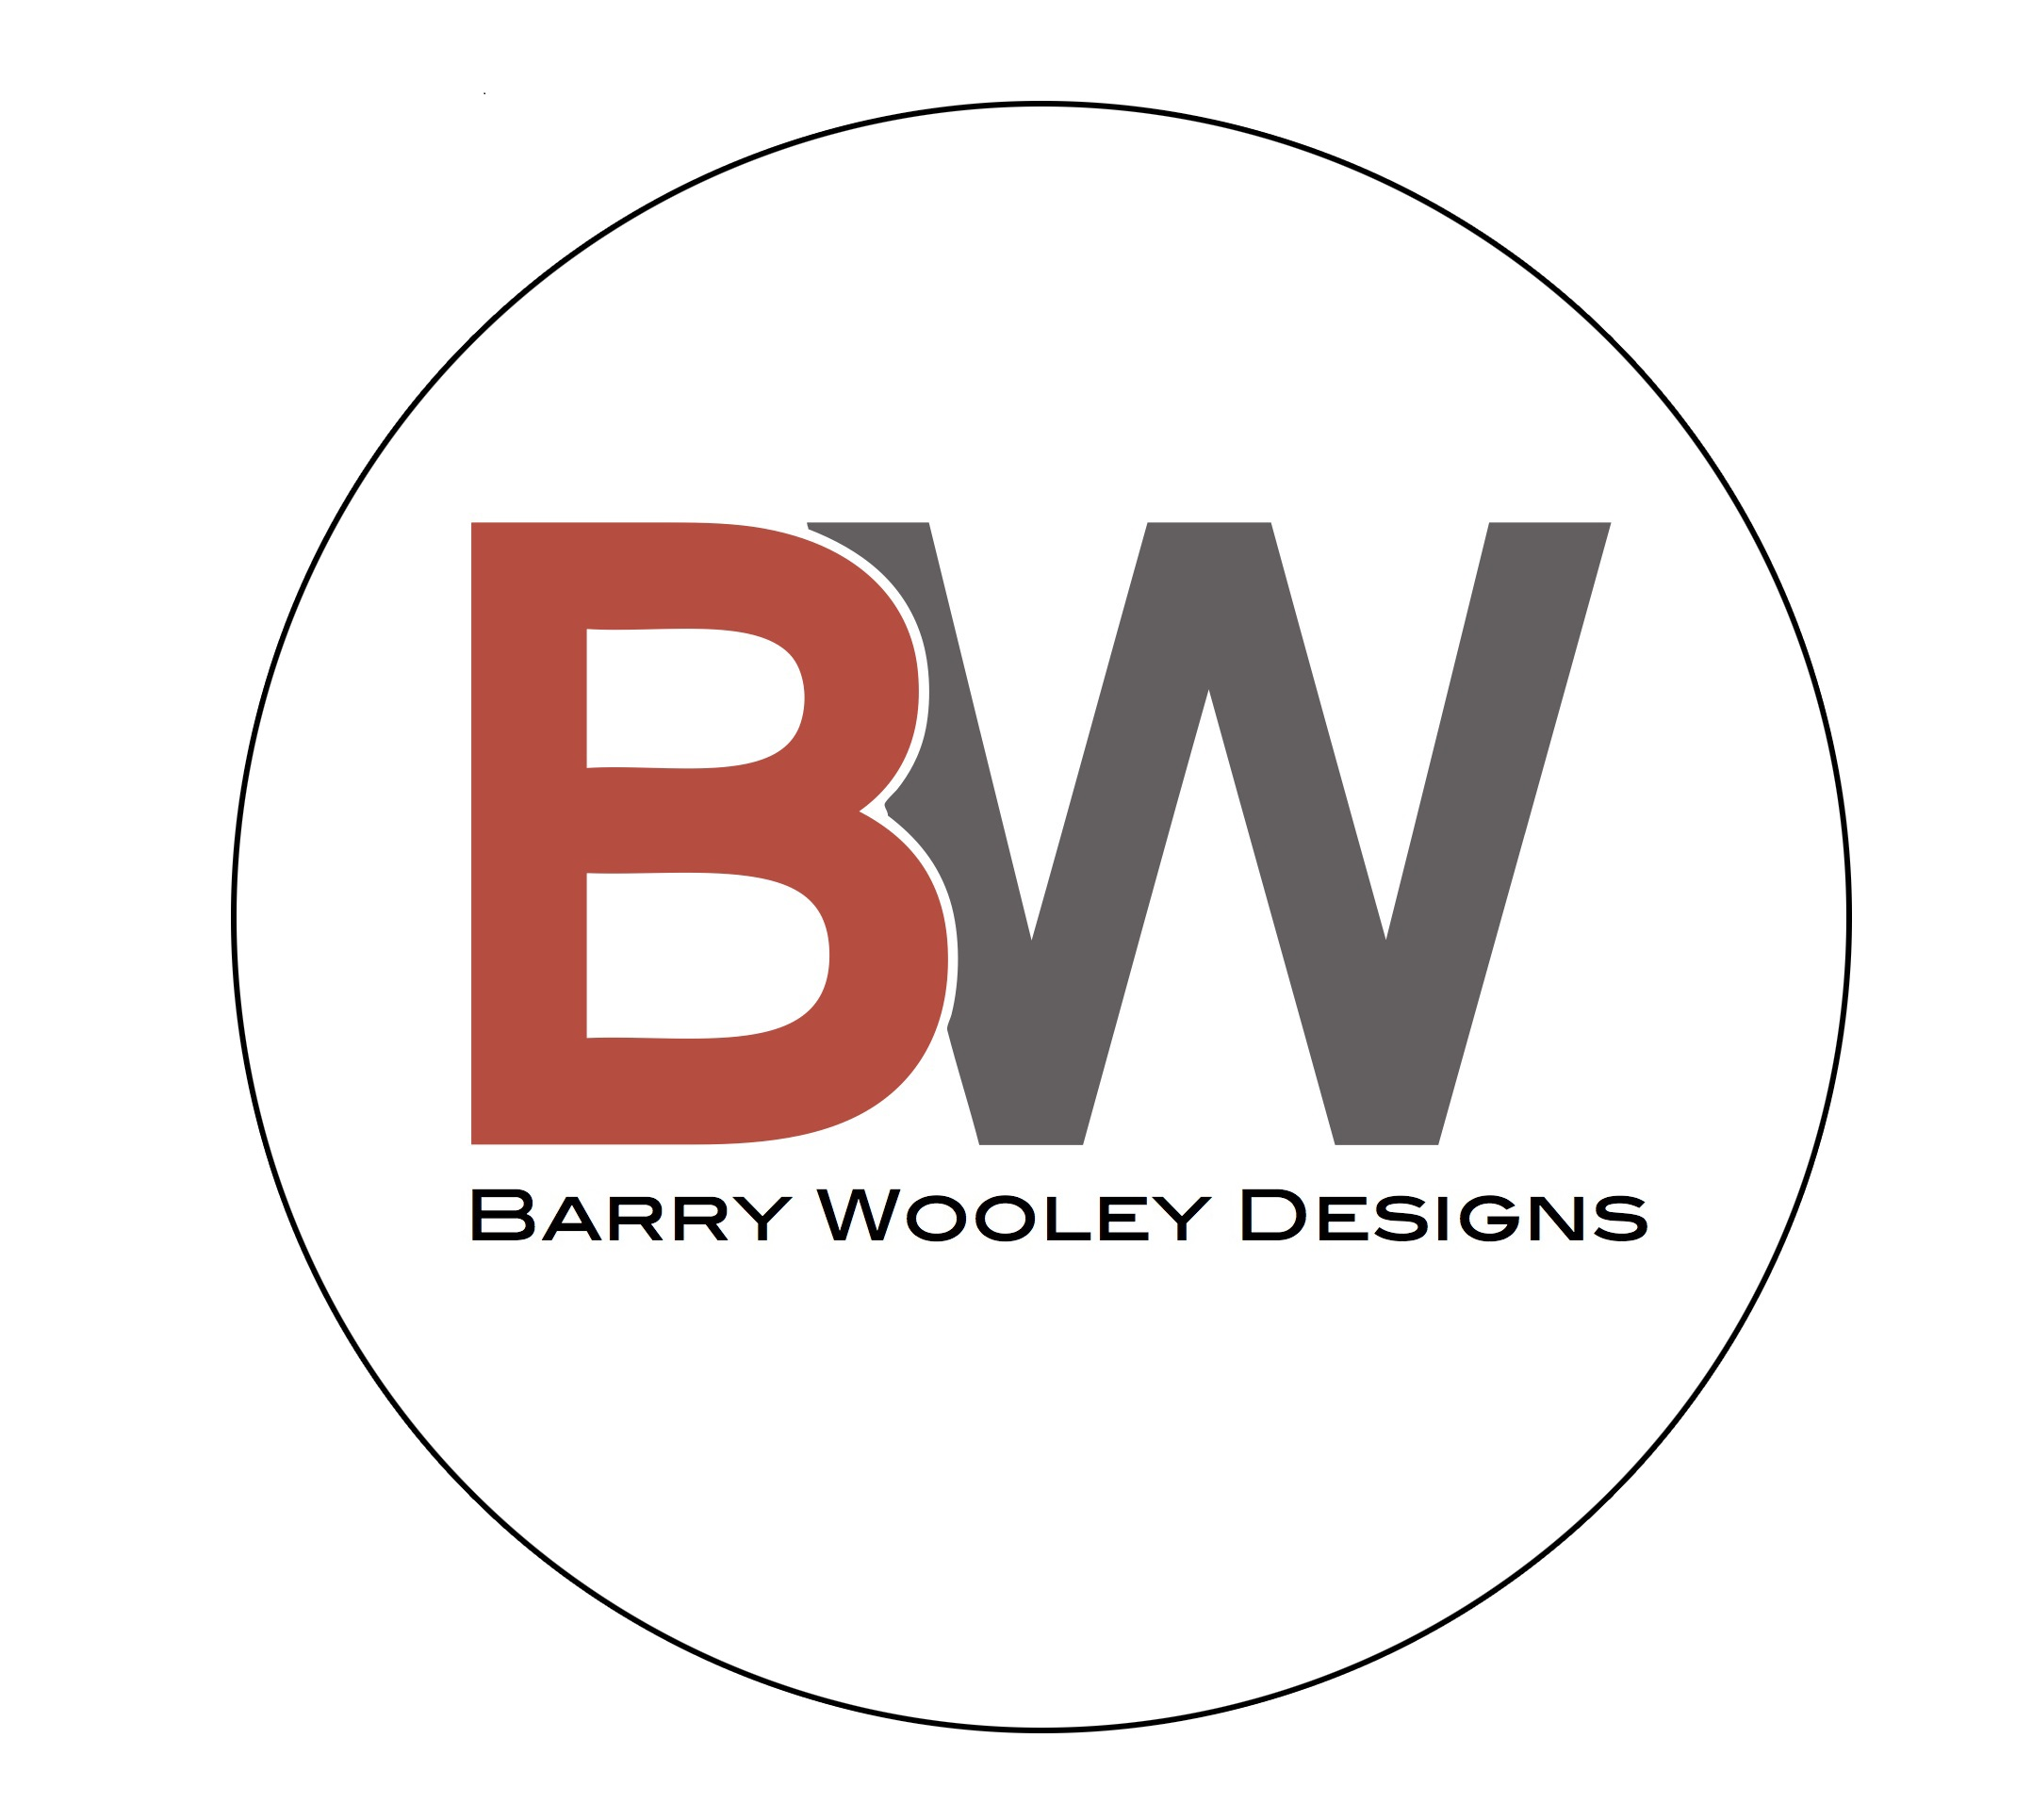 Image of Barry Wooley Designs